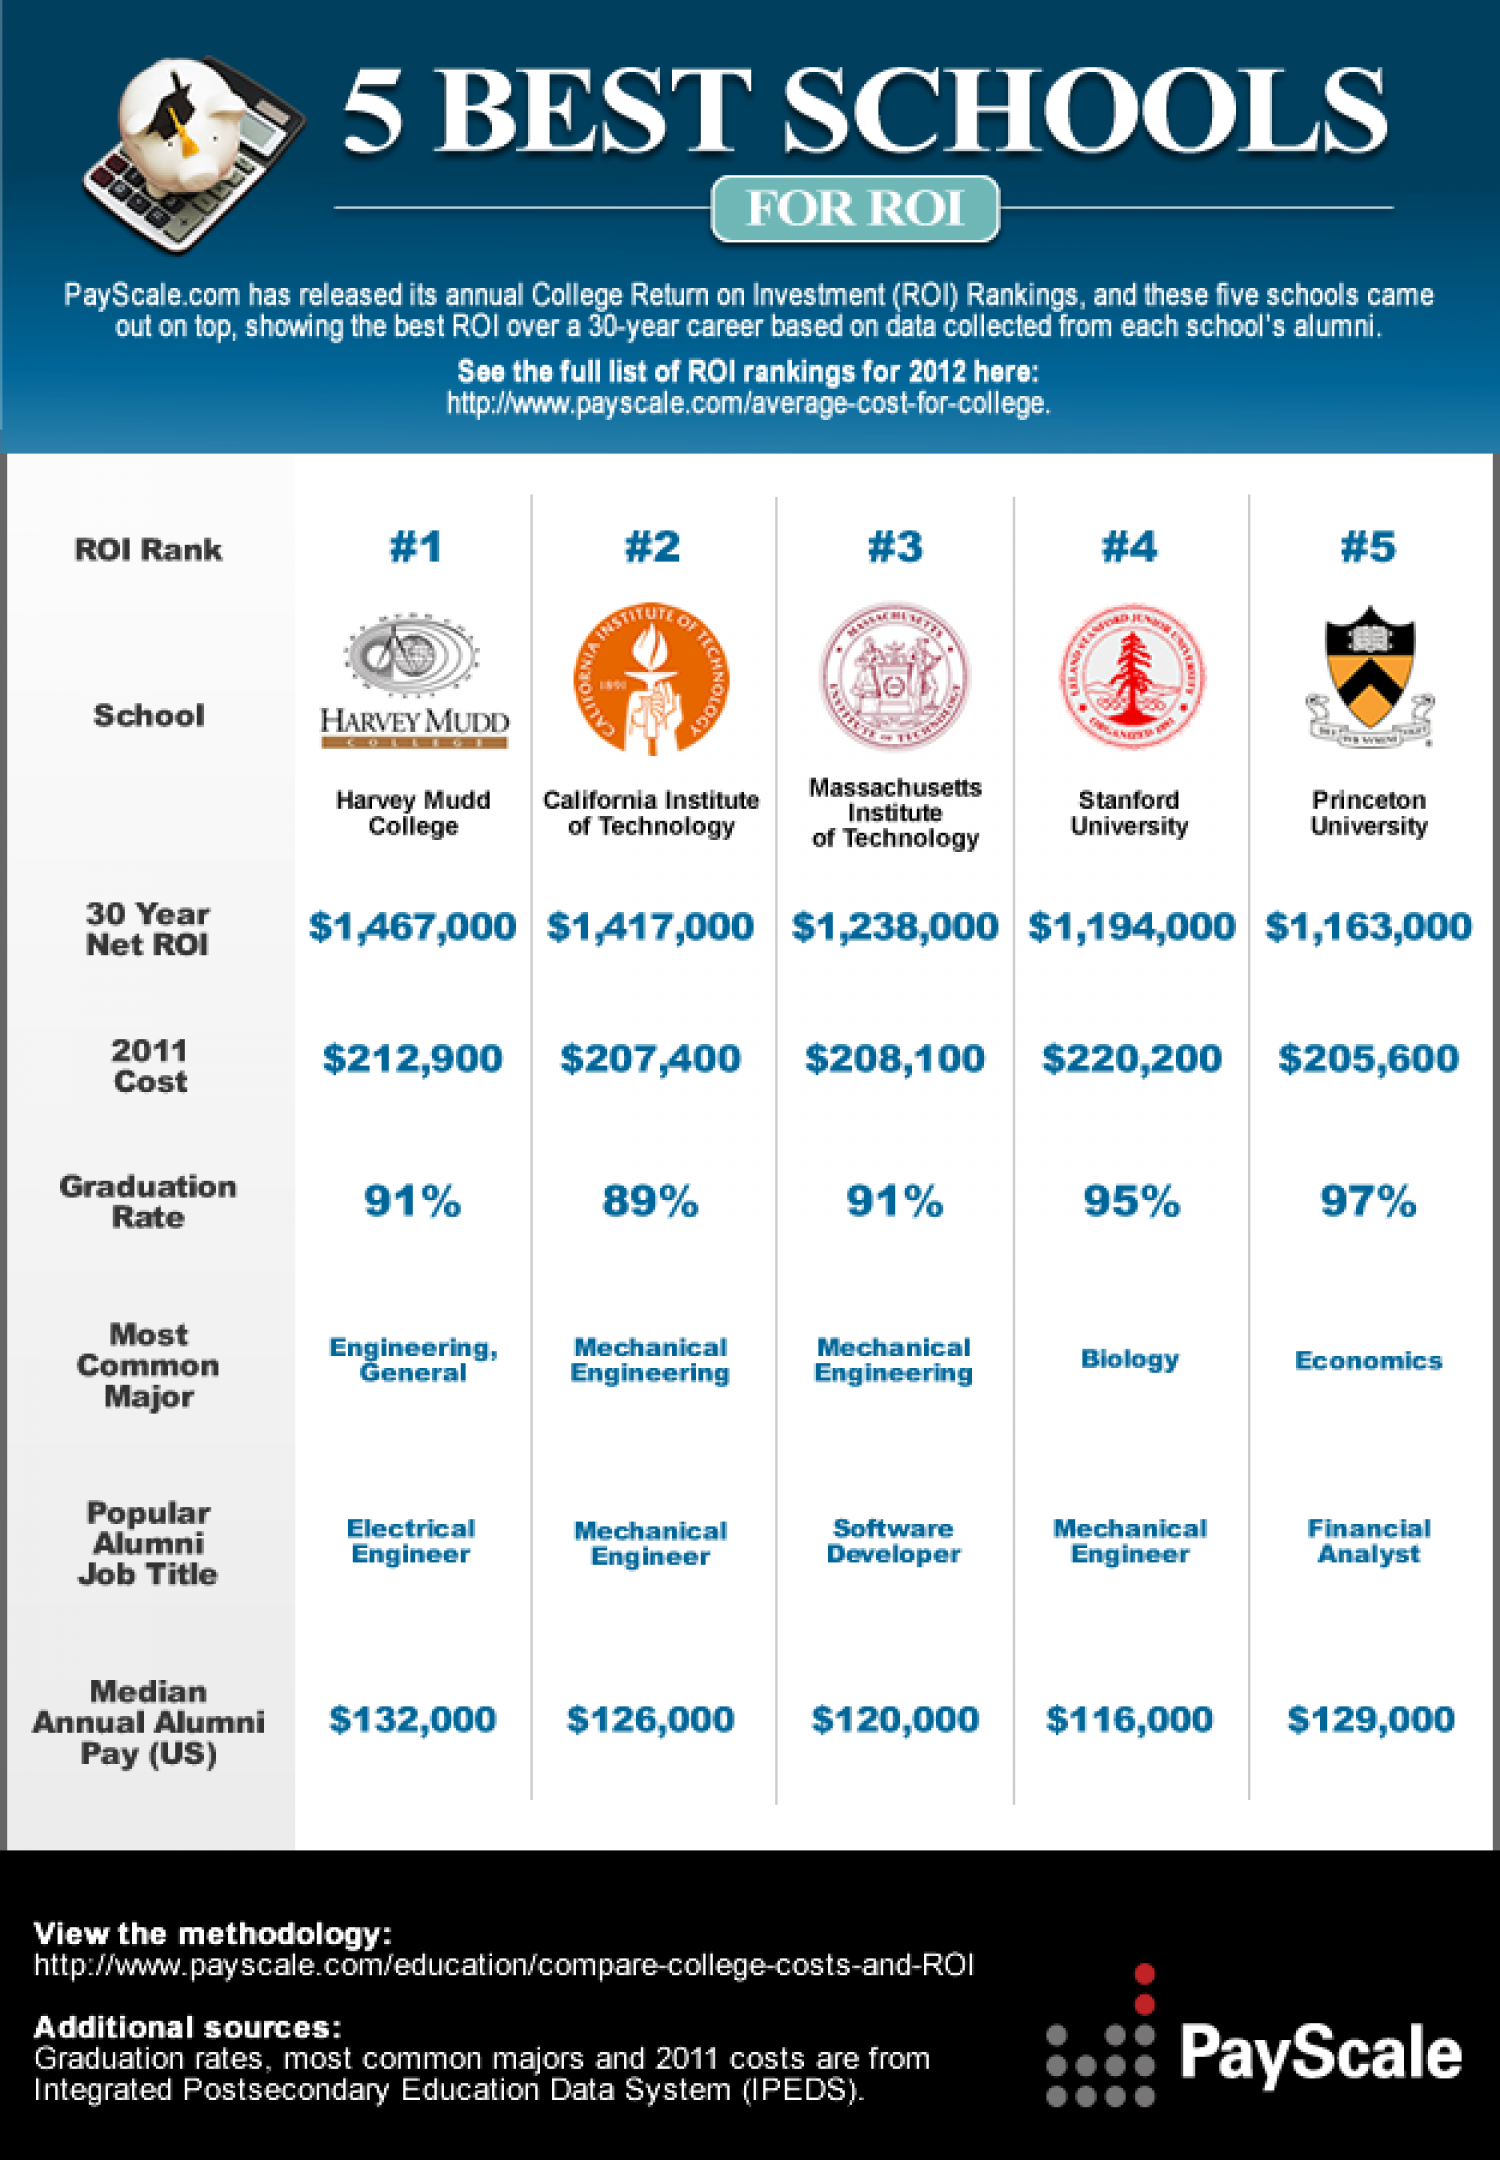 best investment for college students Which College Provides the Best Return on Investment (ROI)? | Visual.ly